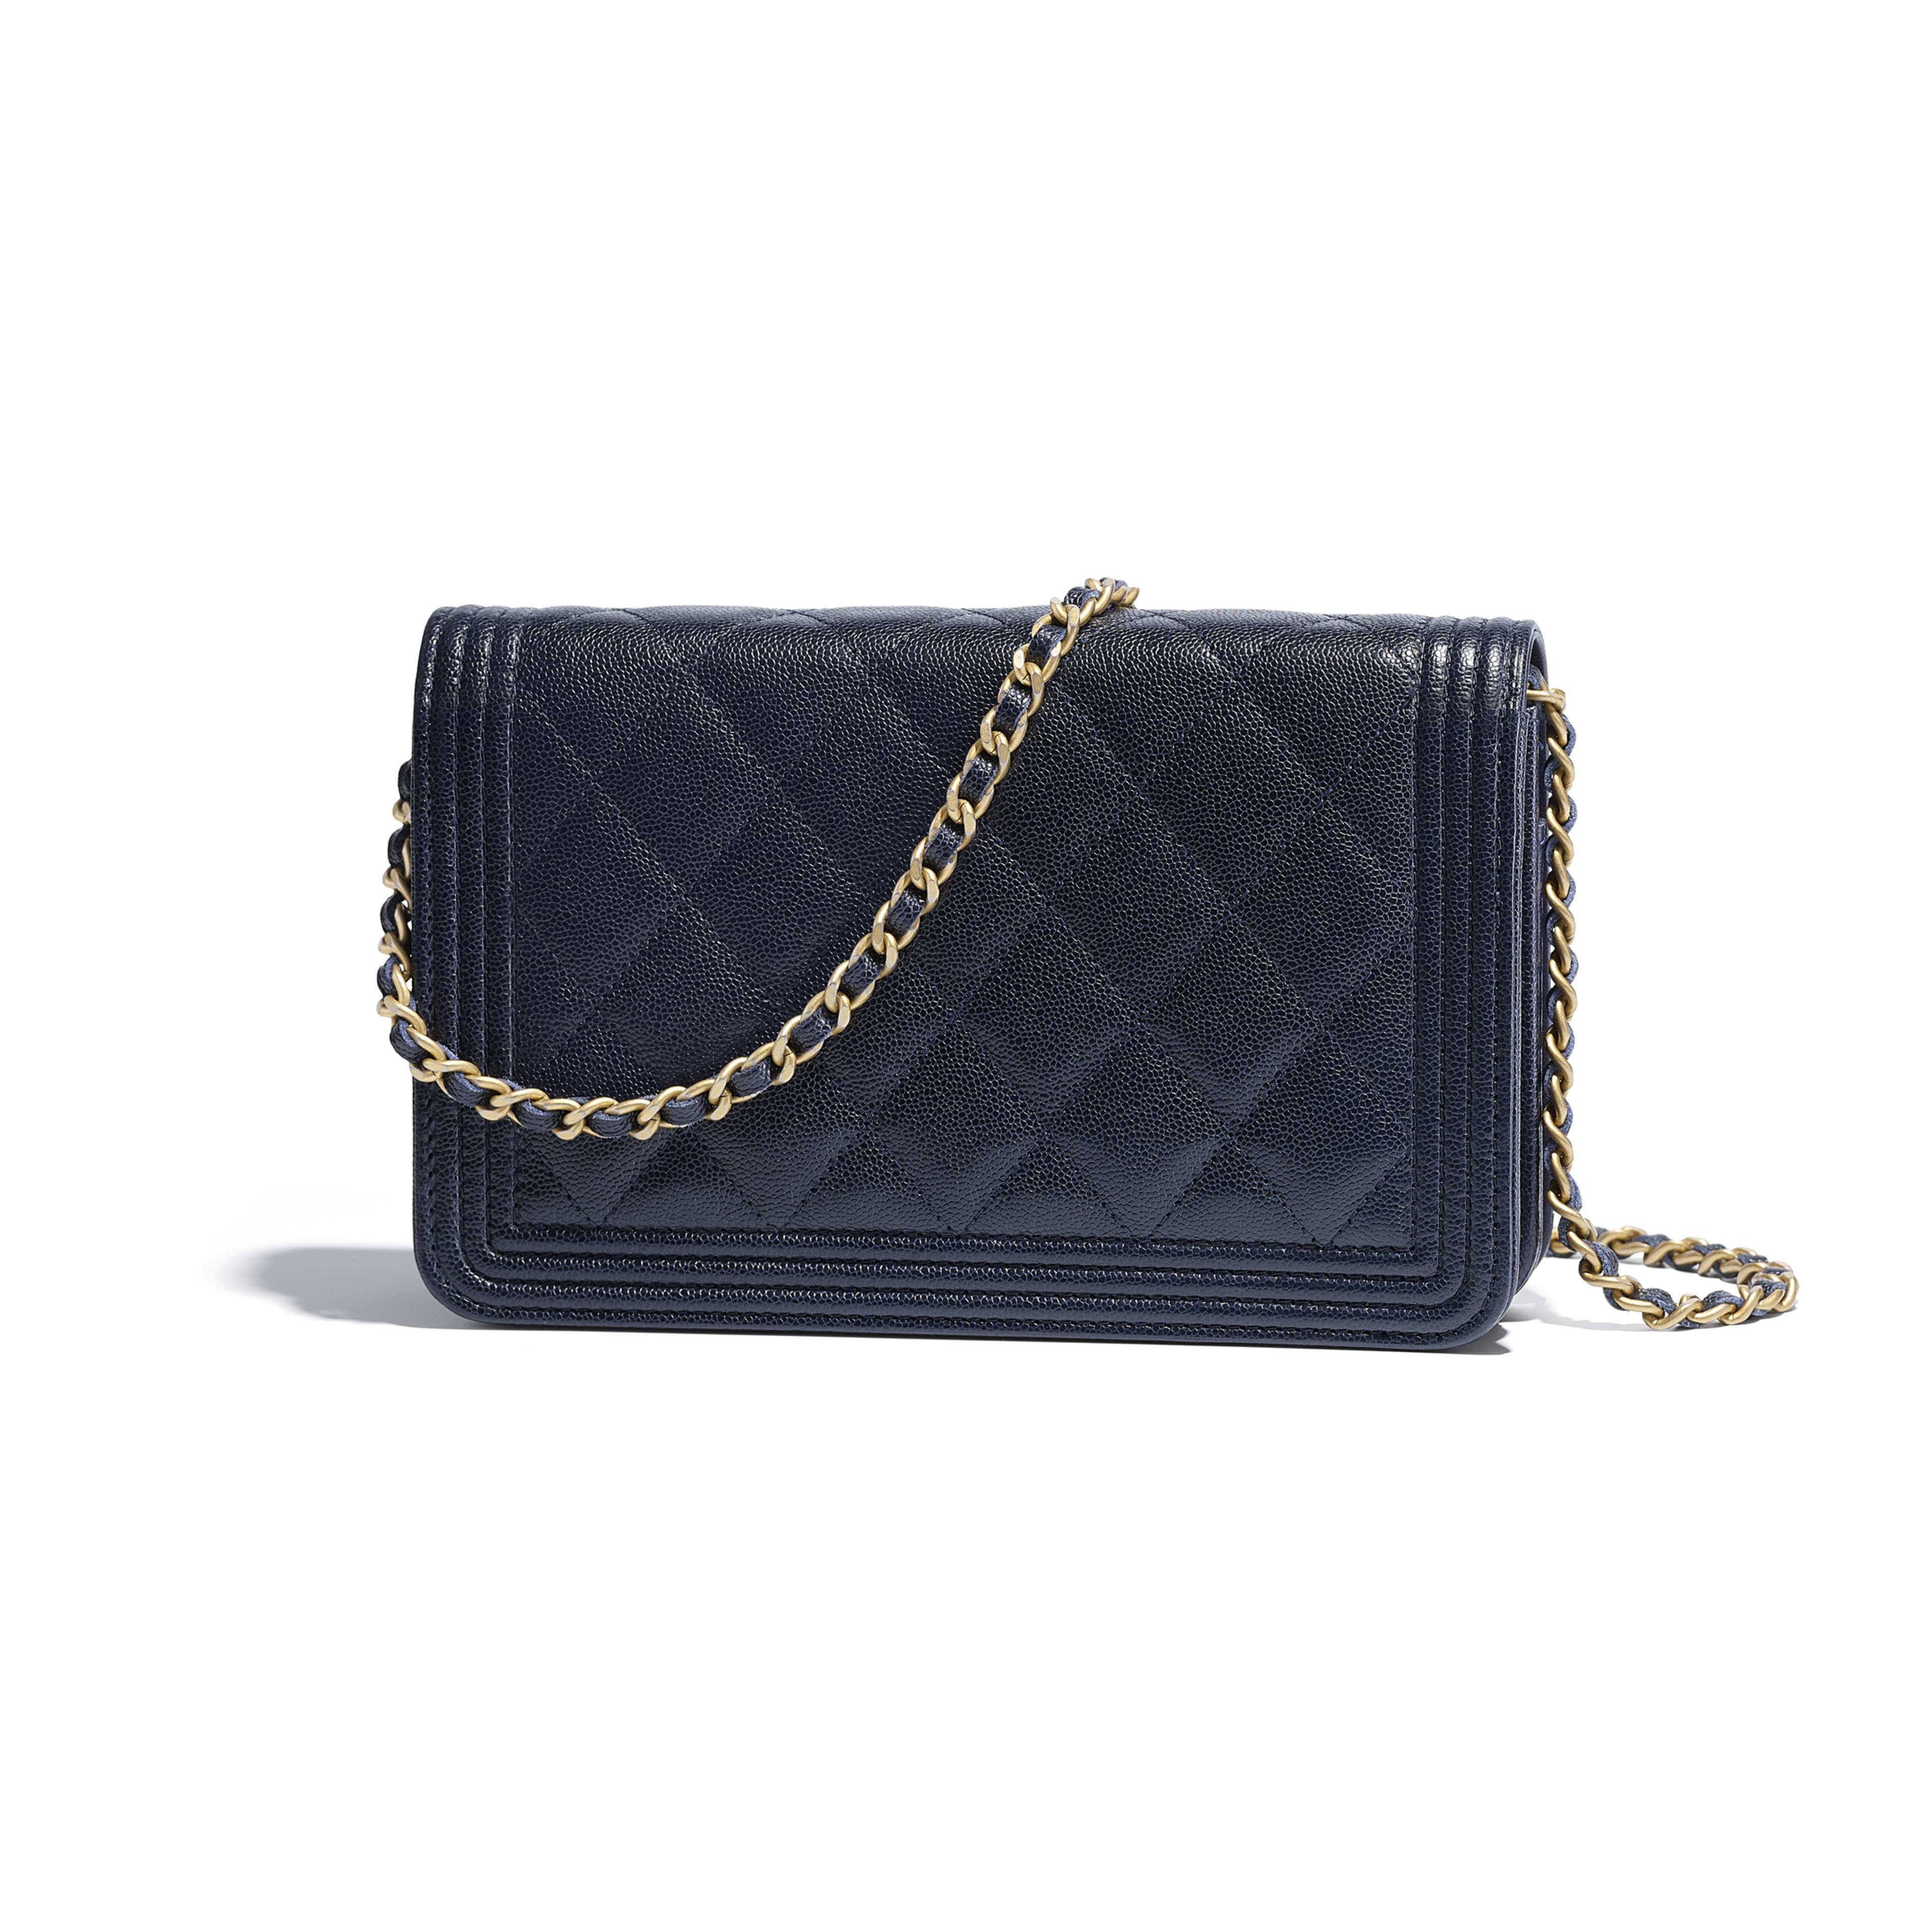 9ccb0fc58381 Grained Calfskin Gold Tone Metal Navy Blue Boy Chanel Wallet On